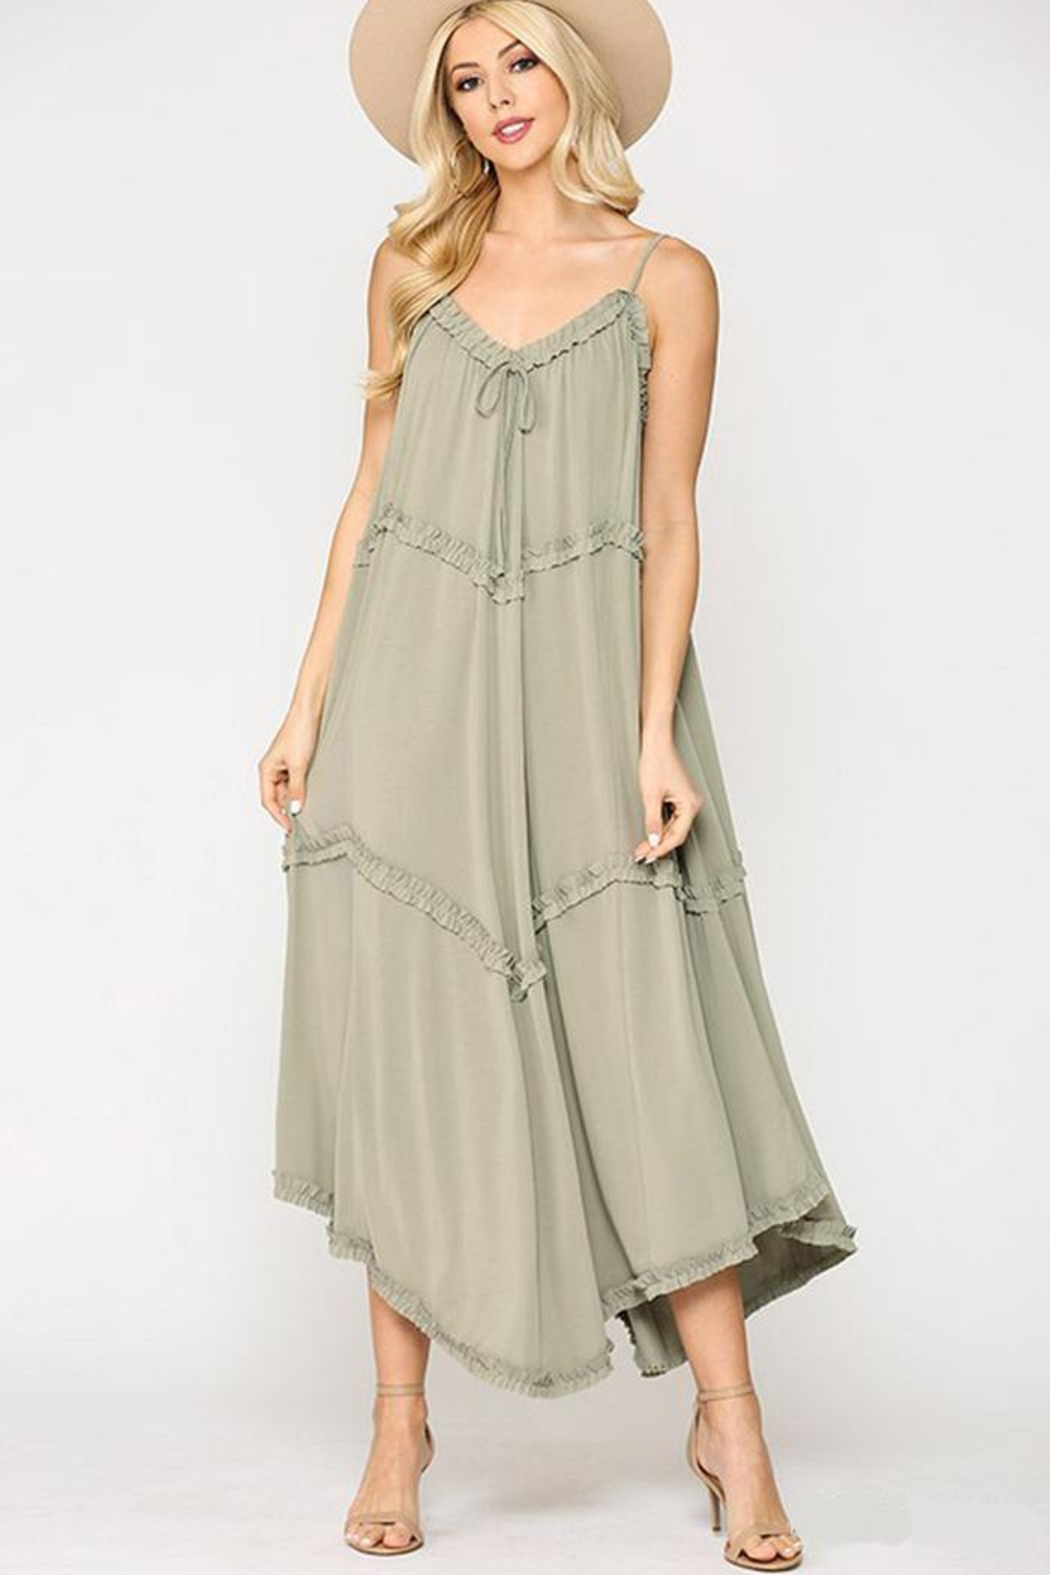 GiGiO Soft Cupro Modal Sleeveless Casual Maxi Dress With Ruffle - Front Cropped Image